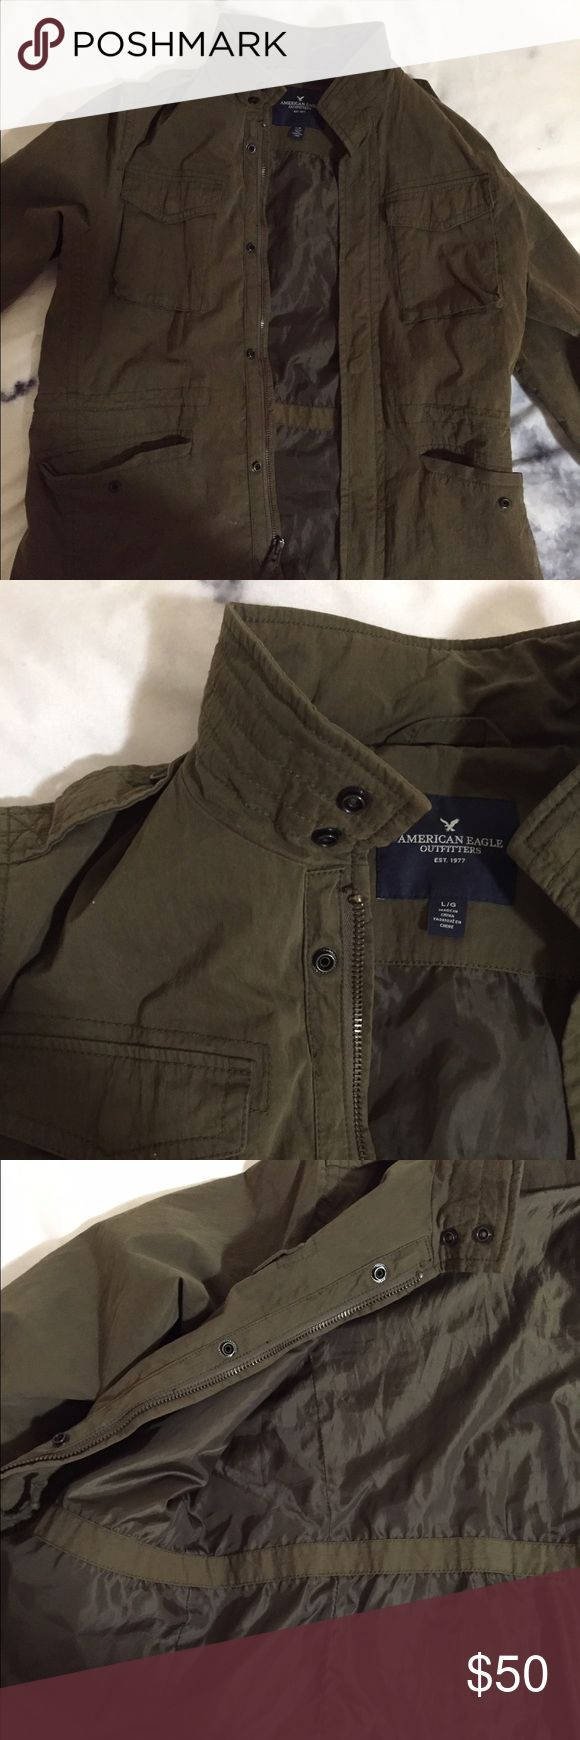 Men's size large American Eagle jacket. Men's size large American Eagle jacket. Olive green color. Worn around five times-great condition! No rips, tears, snags, stains, or wear on this item. Feel free to ask questions, if you have any! :) American Eagle Outfitters Jackets & Coats Bomber & Varsity